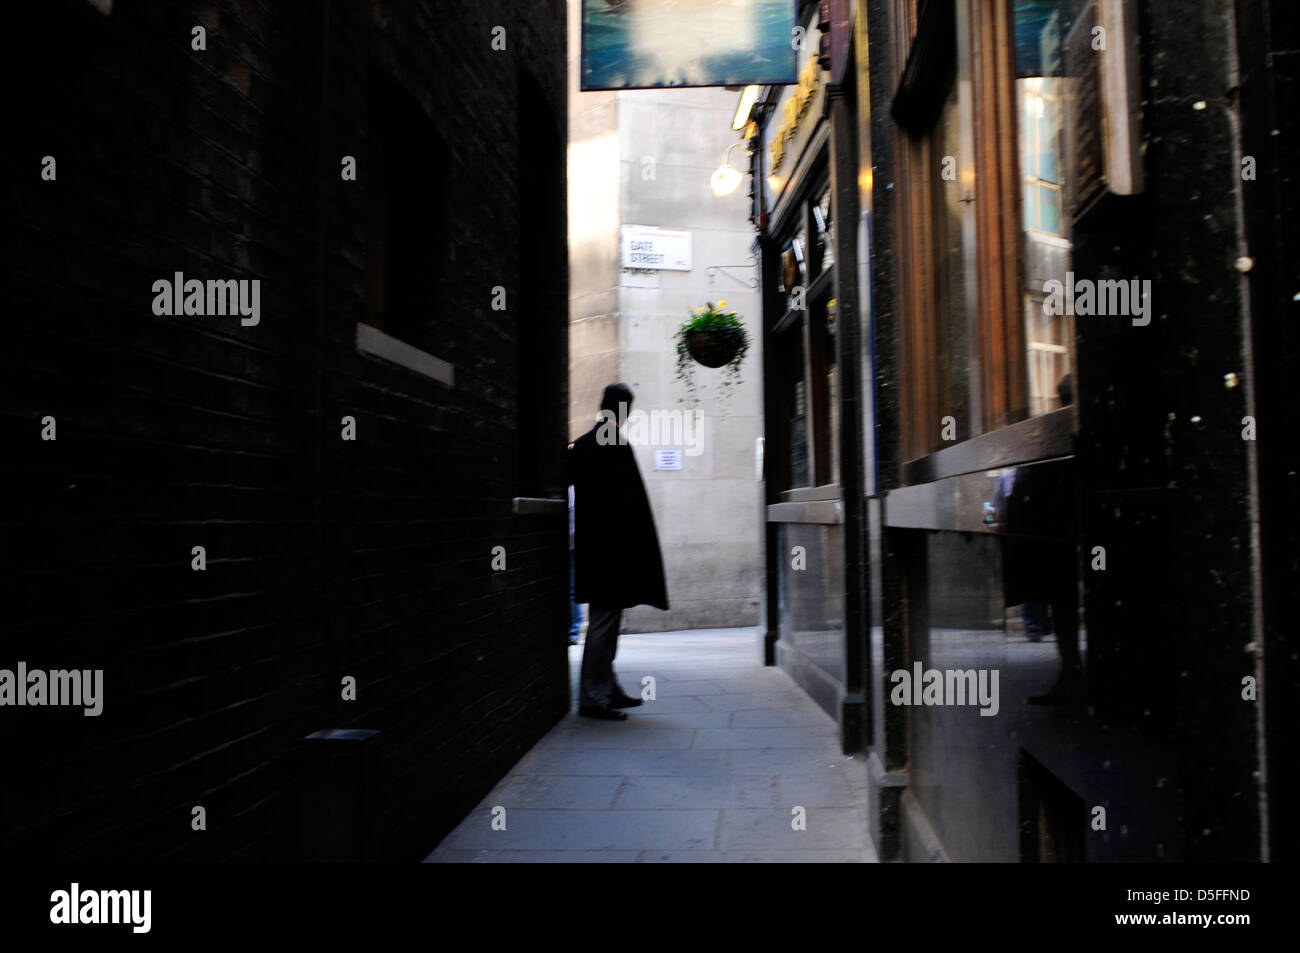 A man waits in an alleyway, Holborn, London, UK. - Stock Image